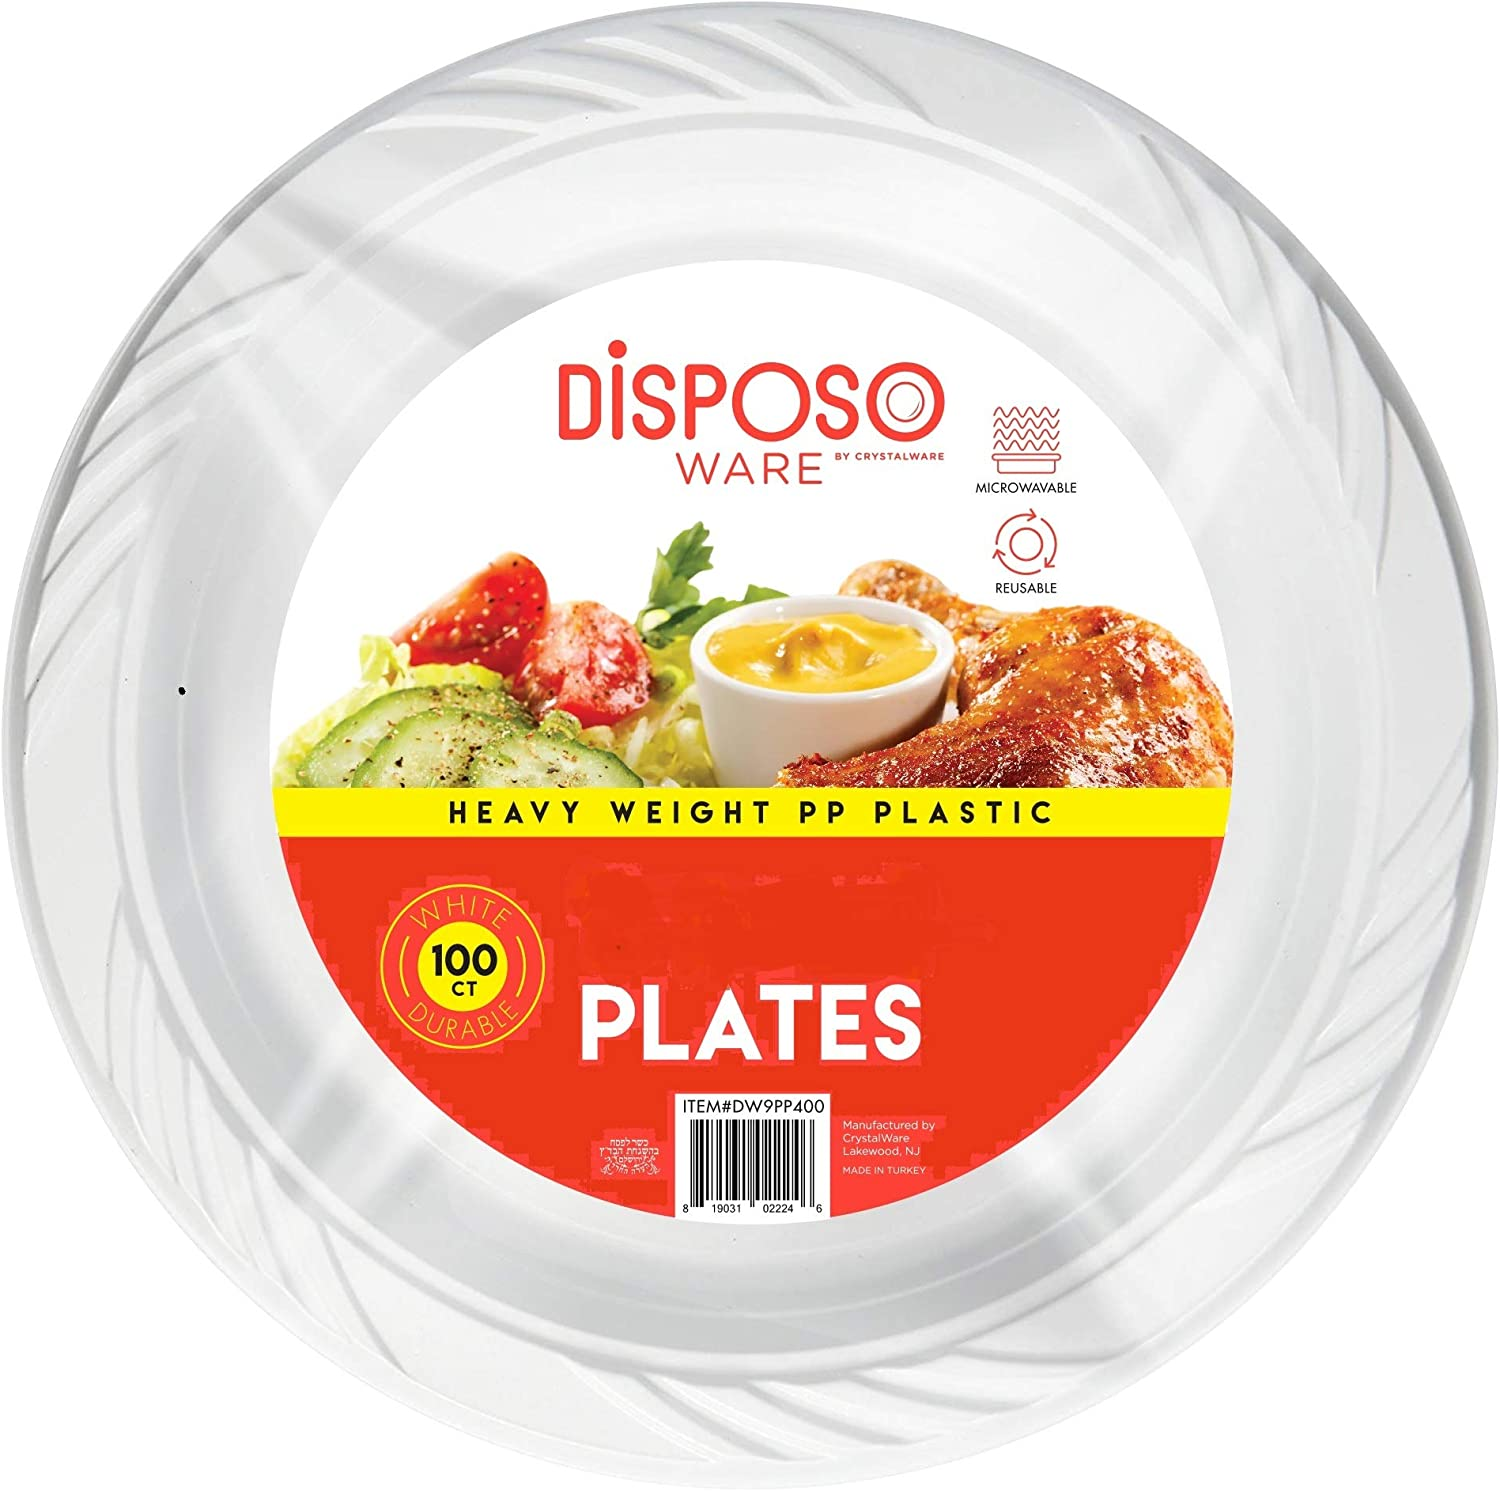 8.5 Inch 100 Count Round White Plastic Plates. These are disposable, heavy duty, white plastic plates. Great for: Diners, Parties, Kids plates, Wedding, Camping, Trips and any Home and Office use.